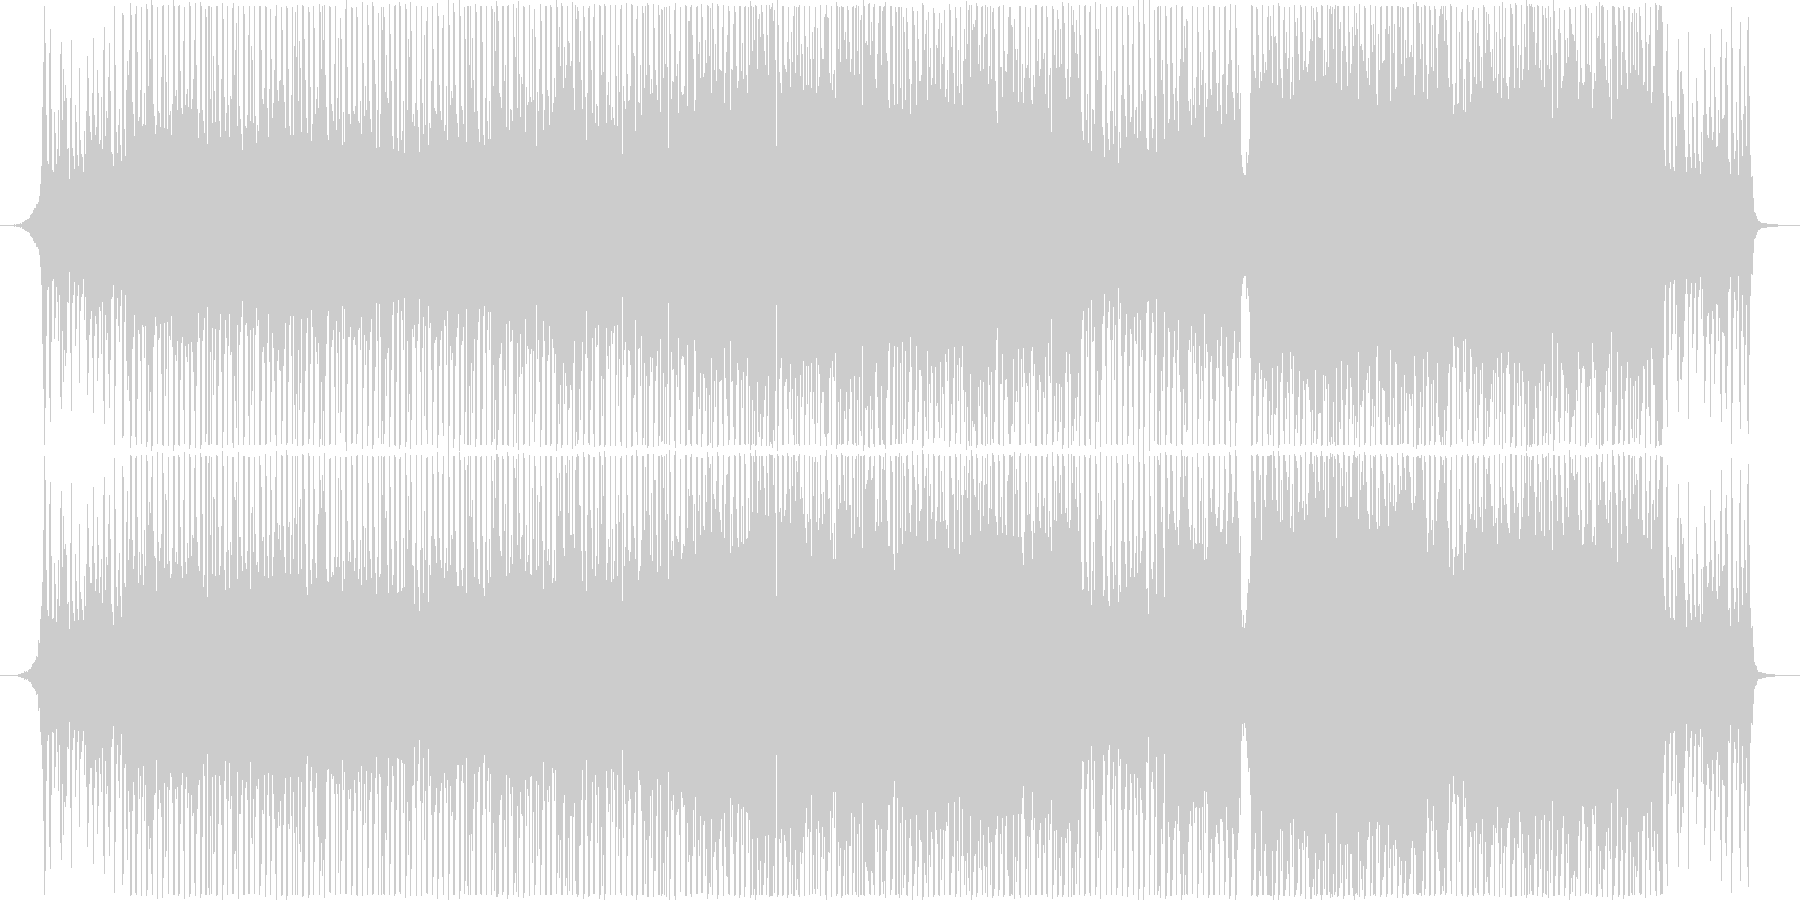 Hope/Bright/Rhythmic_A song with a good tempo's unreproduced waveform